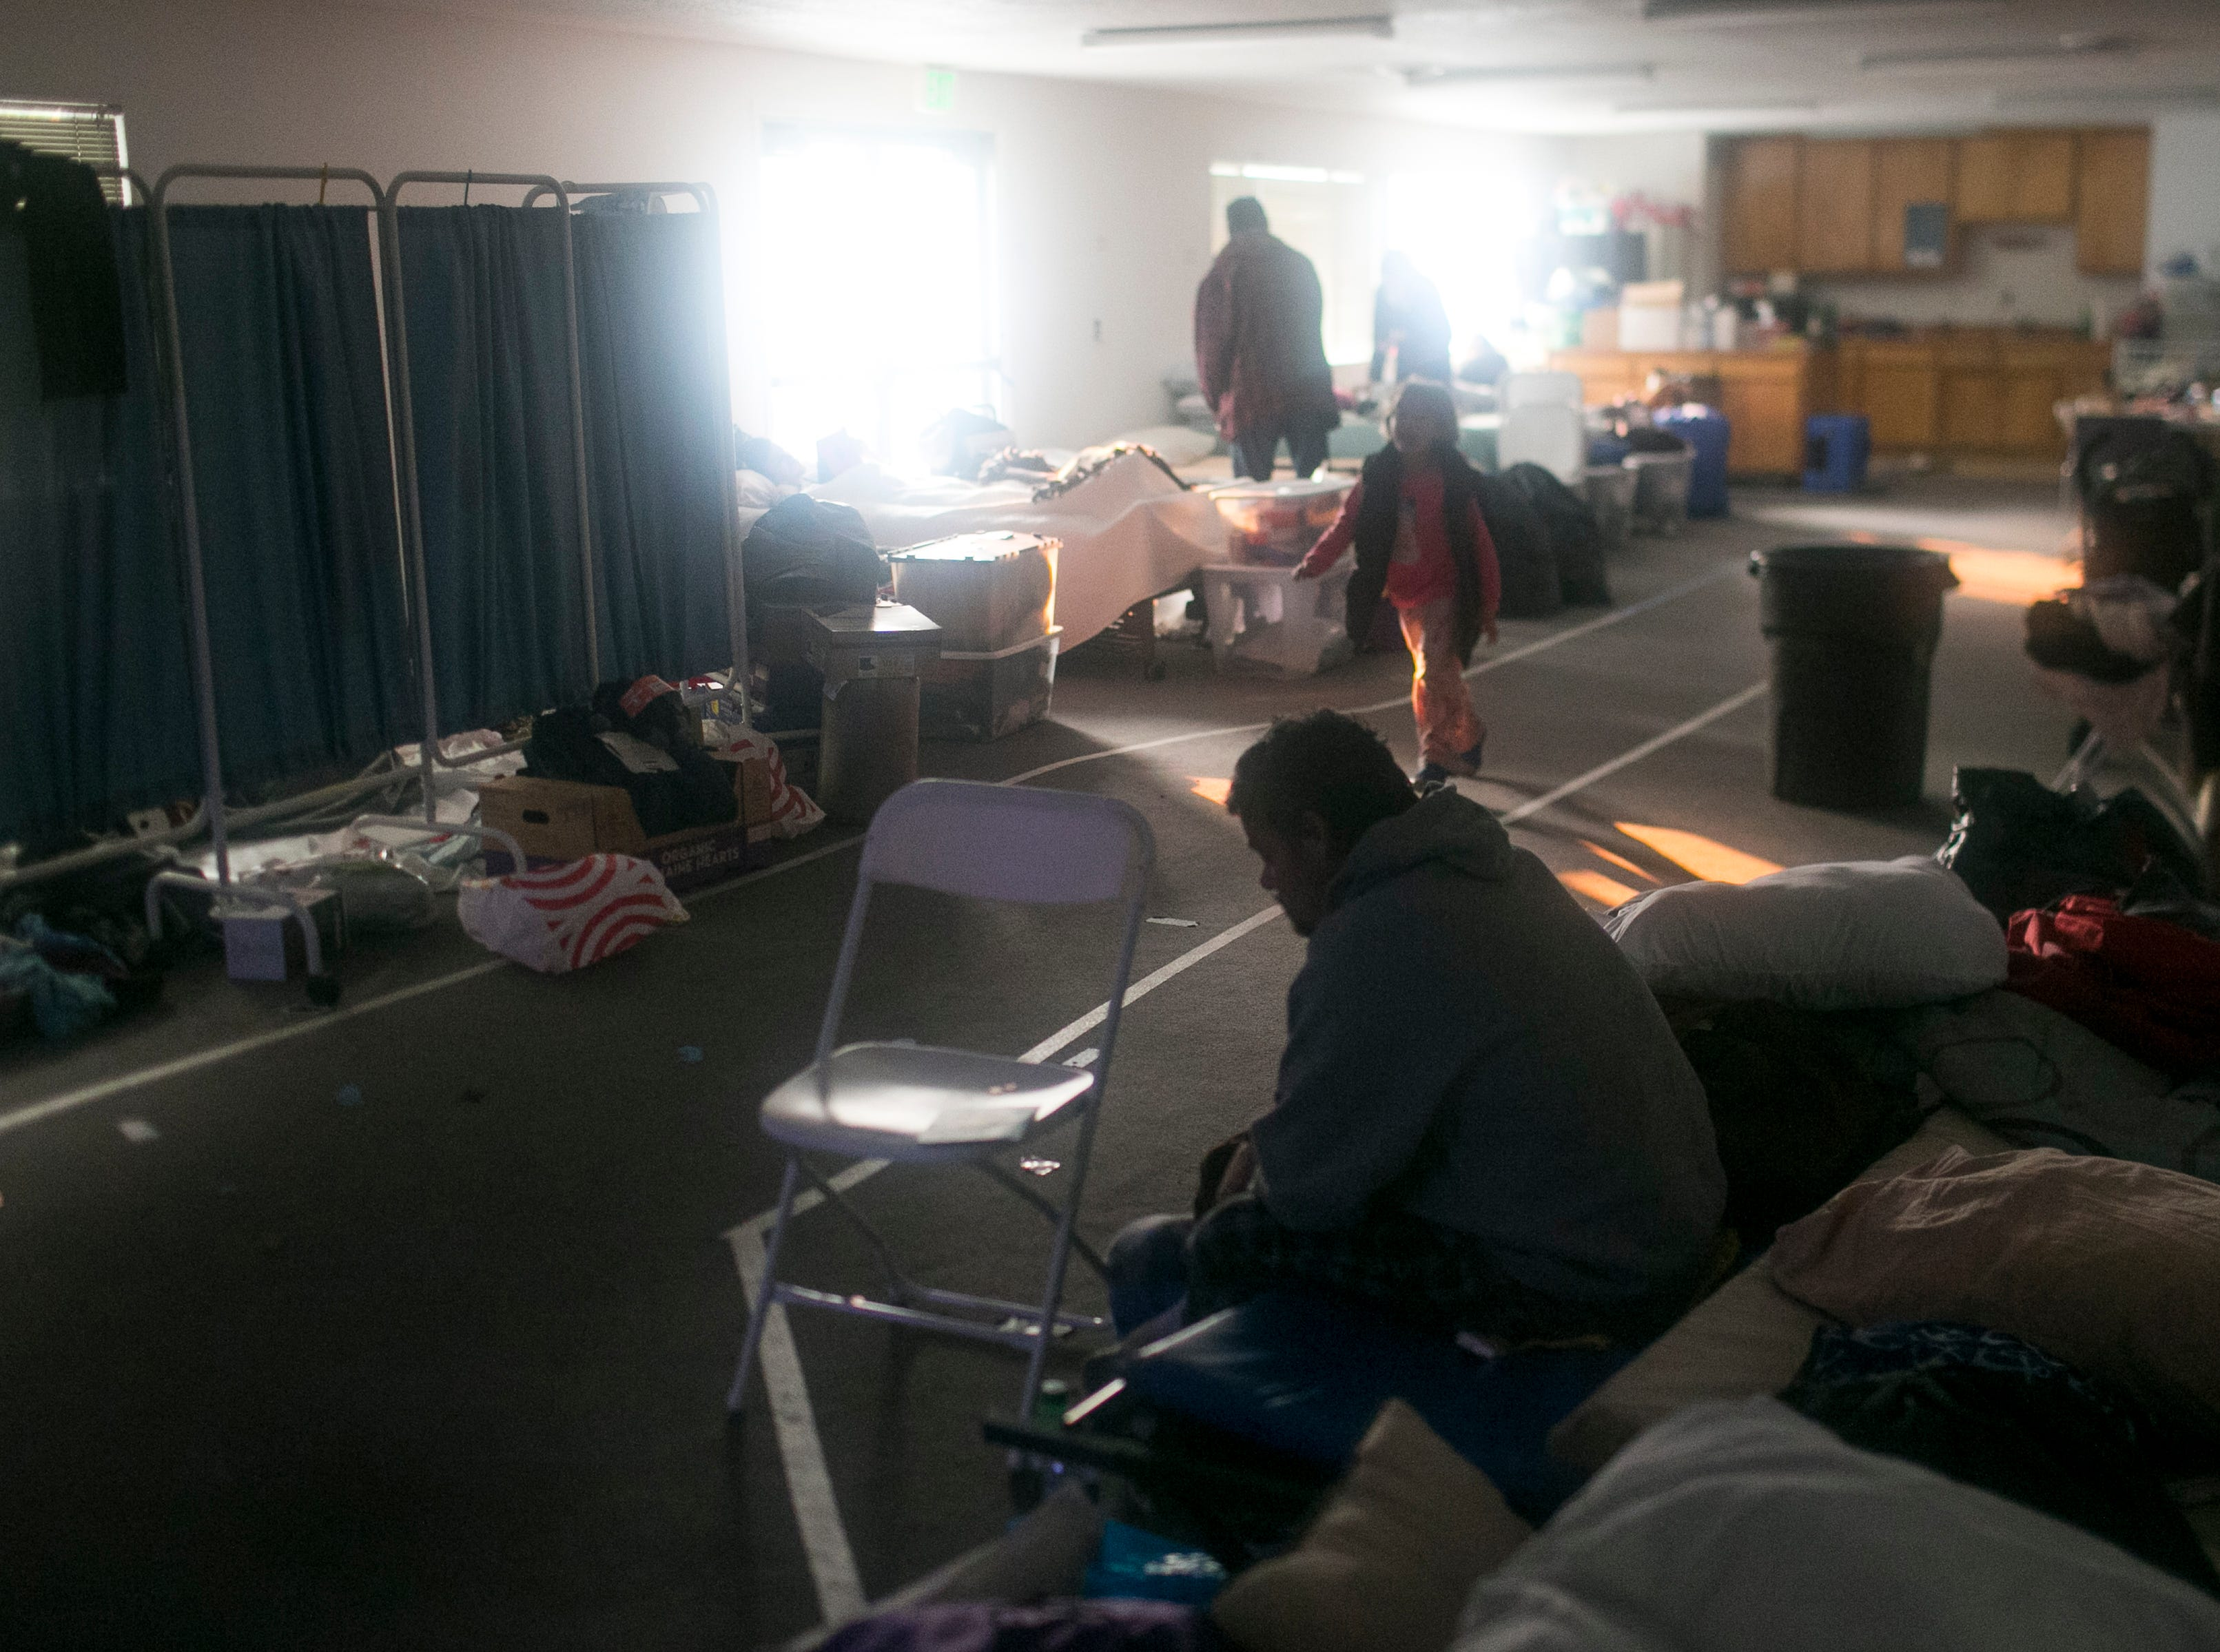 Families evacuated from the town of Paradise in the Camp Fire stat their day at the East Avenue Church Shelter in Chico, California on November 16, 2018.